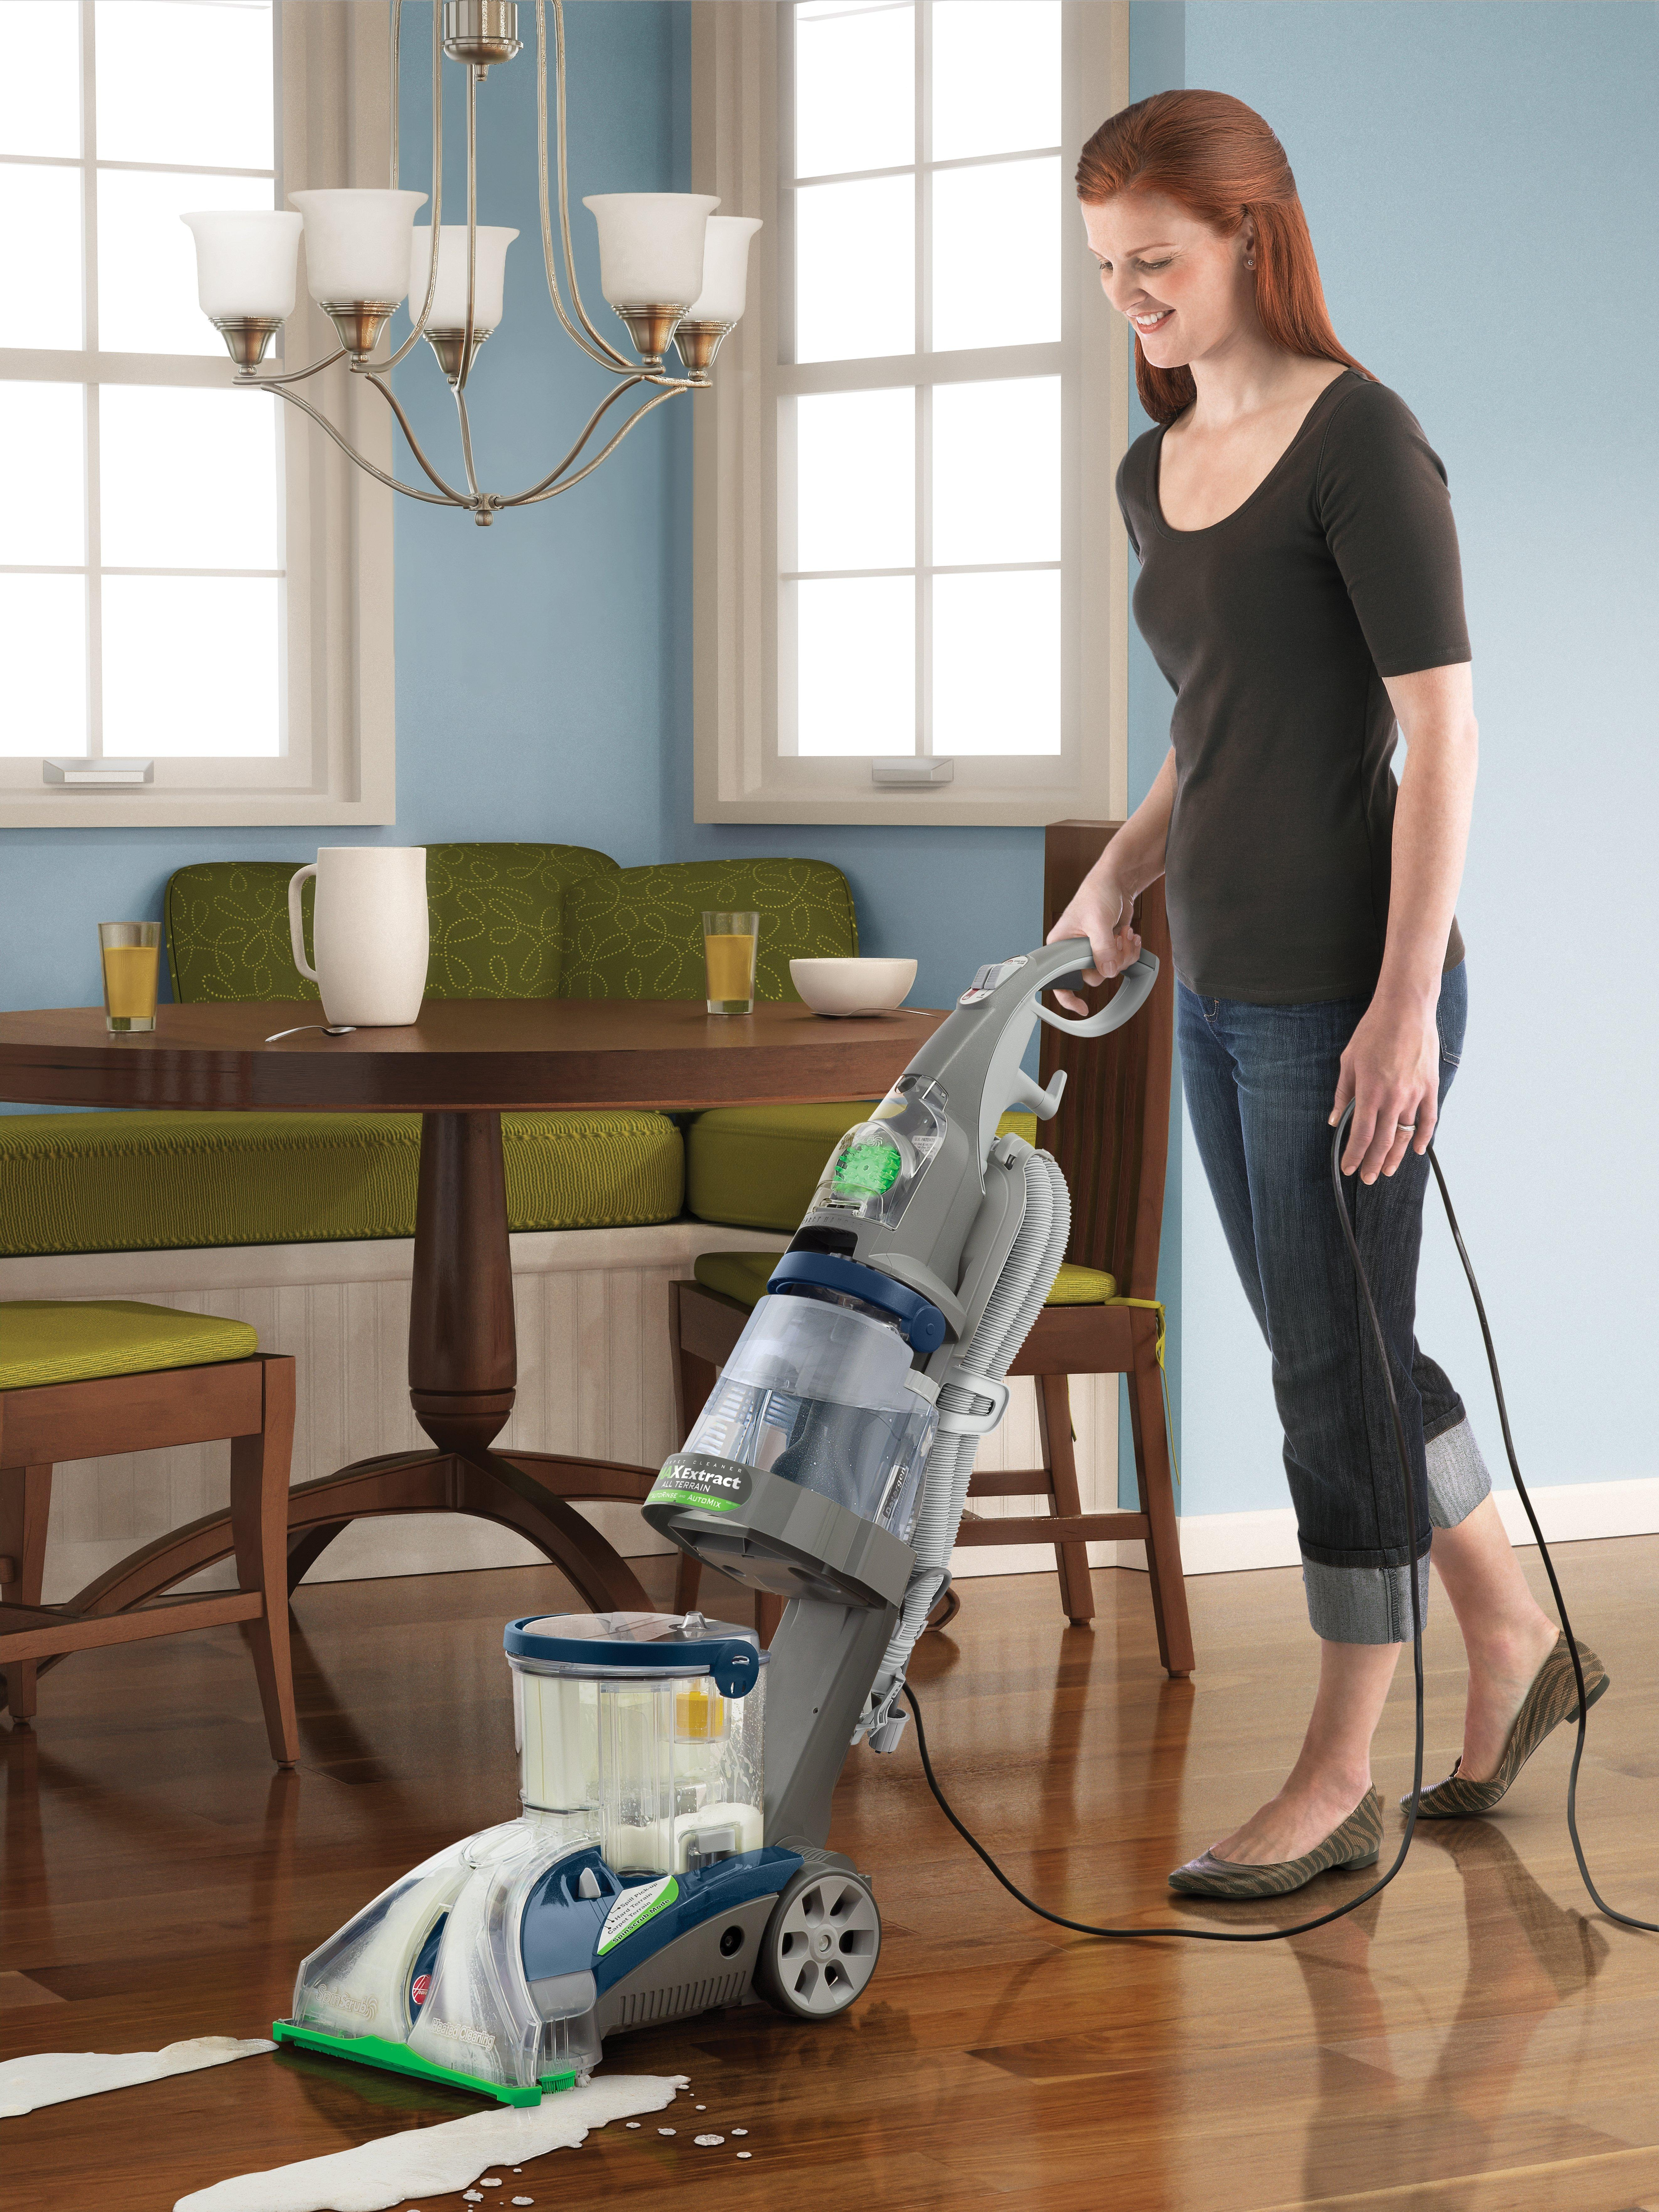 Hoover Max Extract Dual V WidePath Carpet Cleaner F7412900